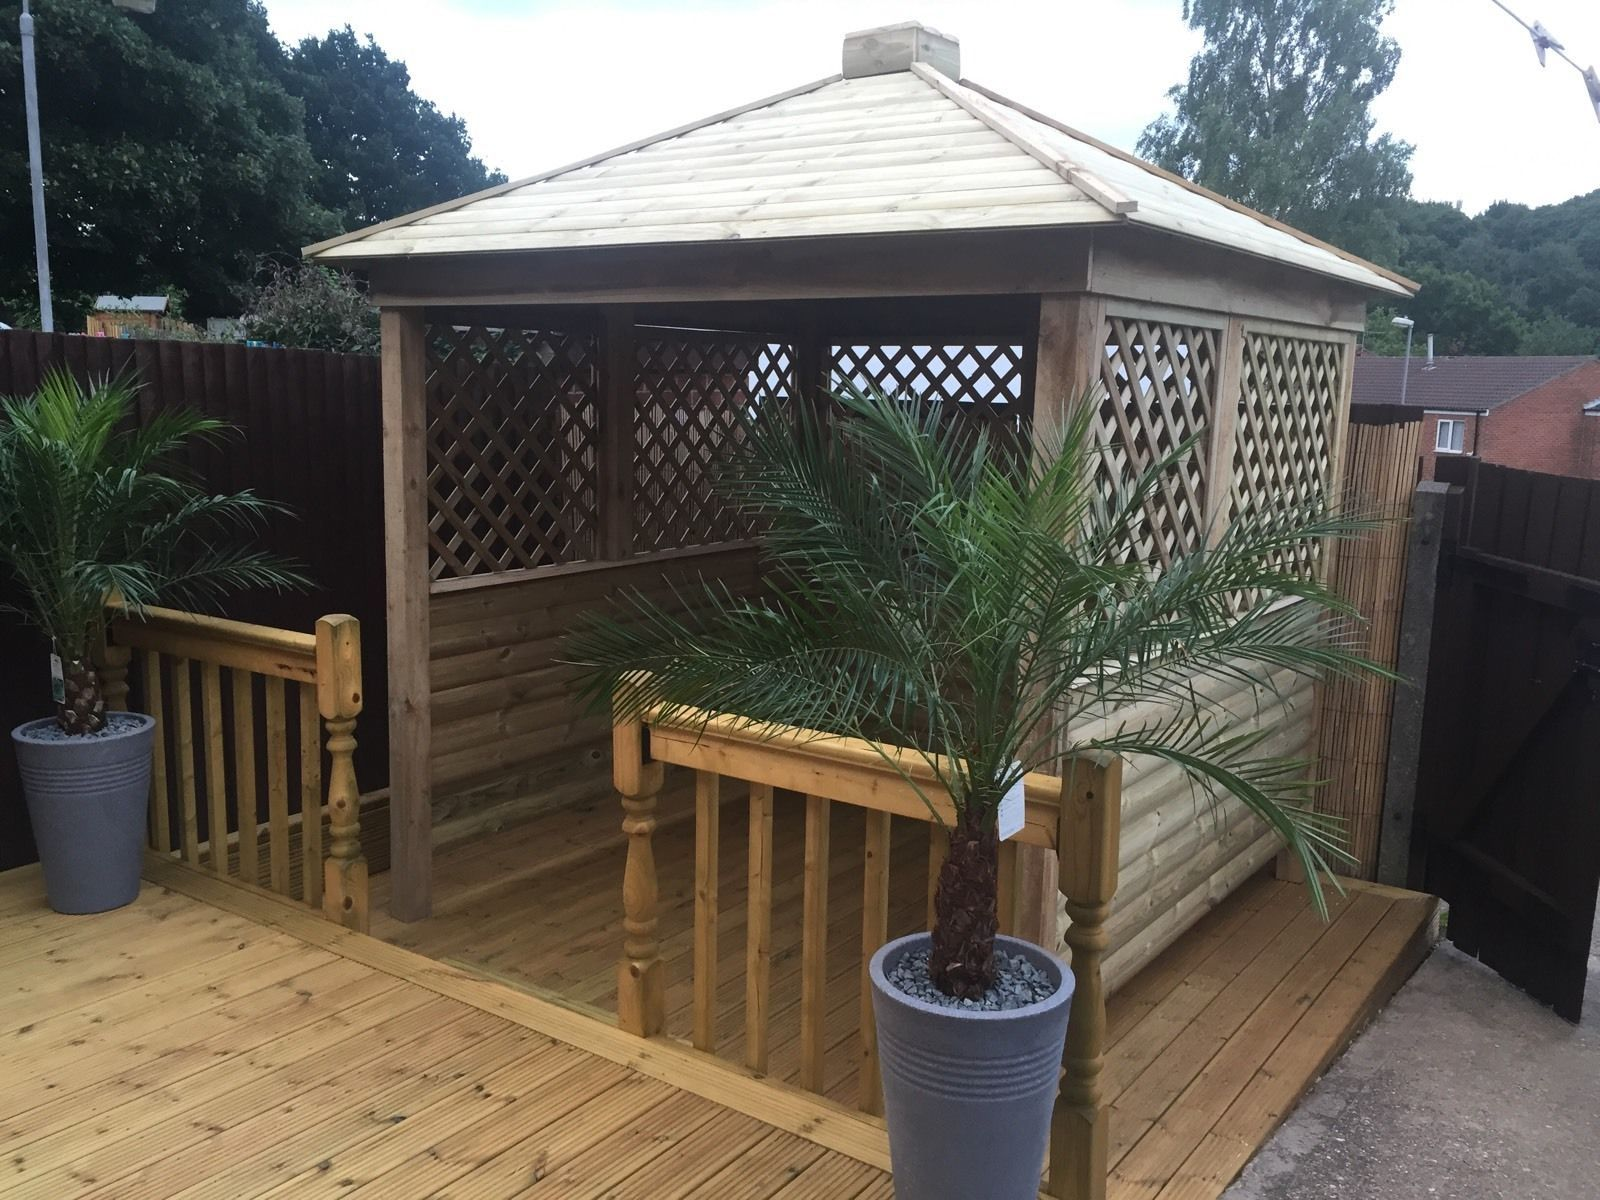 Gazebo Hot Tub Shelter Wooden Seating Area Garden Bar Wood Private And Enclosed Ebay Hot Tub Shelters Garden Seating Garden Bar